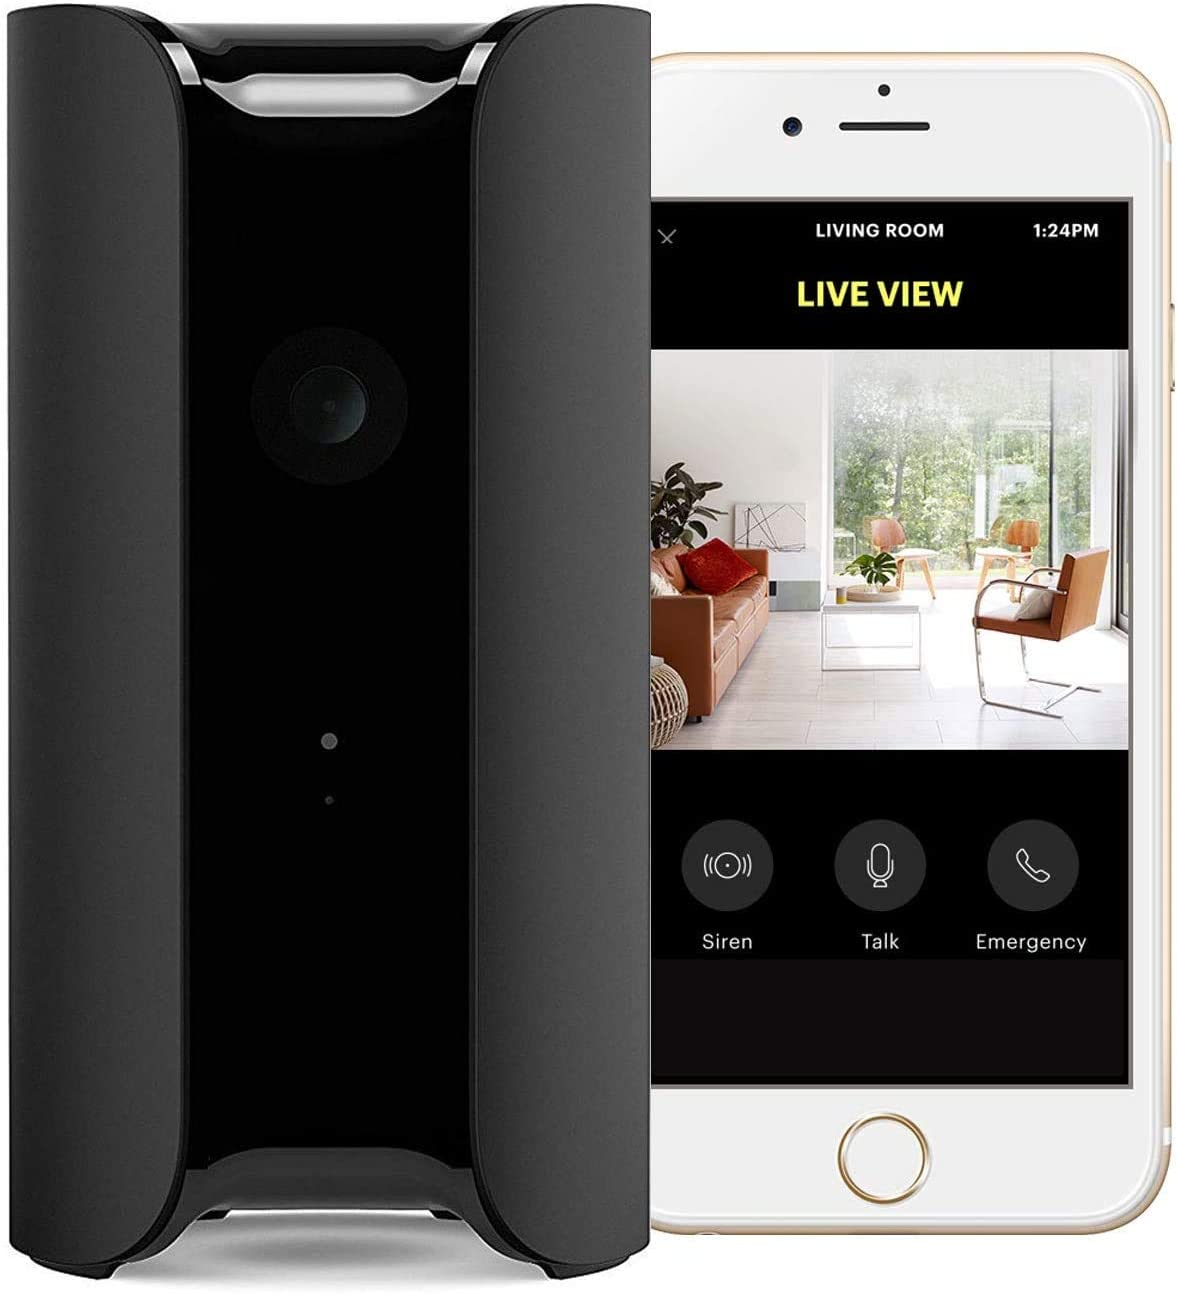 Canary View Smart Indoor Security Camera + 1-Year Premium Service Plan |1080p HD Wide-Angle Lens | Motion-Activated Alerts. Alexa, iOS, Android, Google, Black